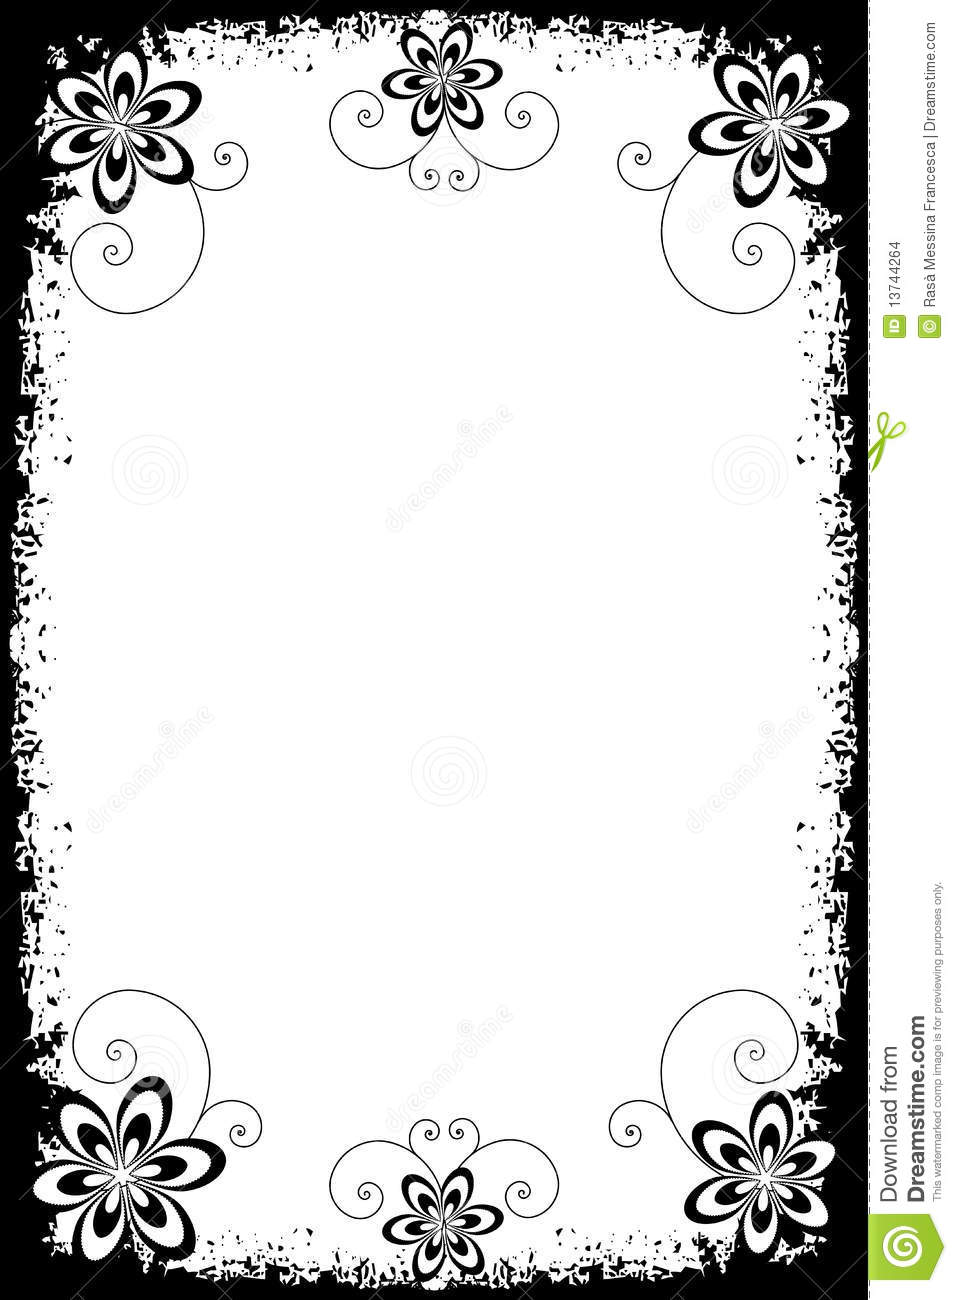 Grunge Floral Borders Stock Images - Image: 13744264